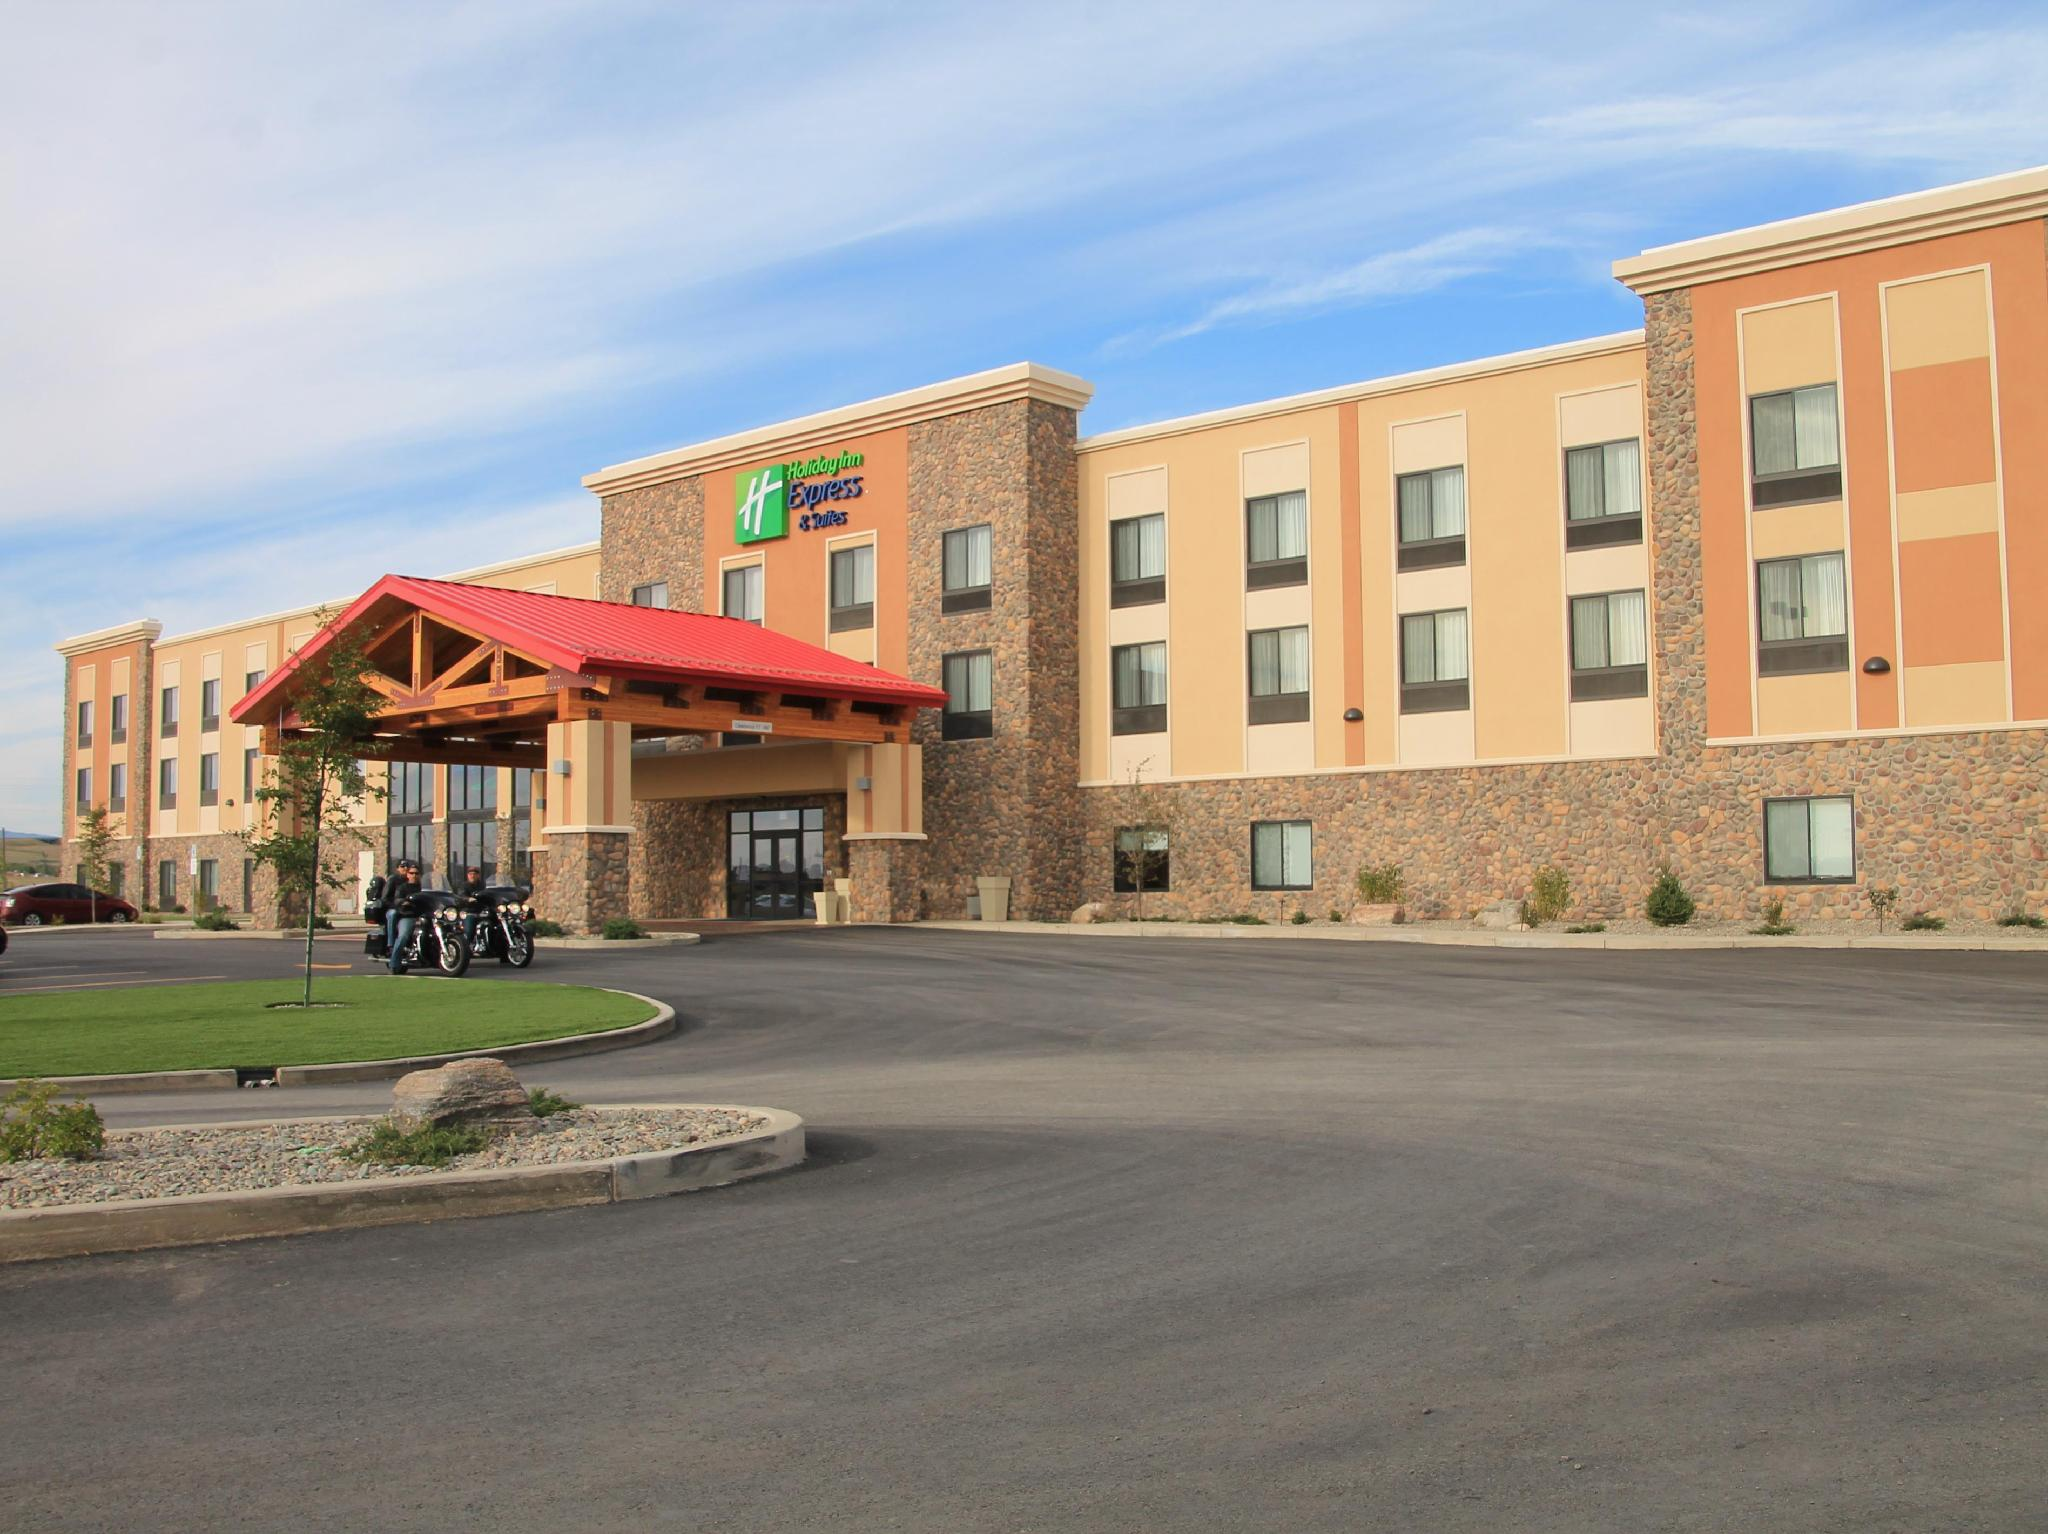 Holiday Inn Express and Suites Browning, Glacier